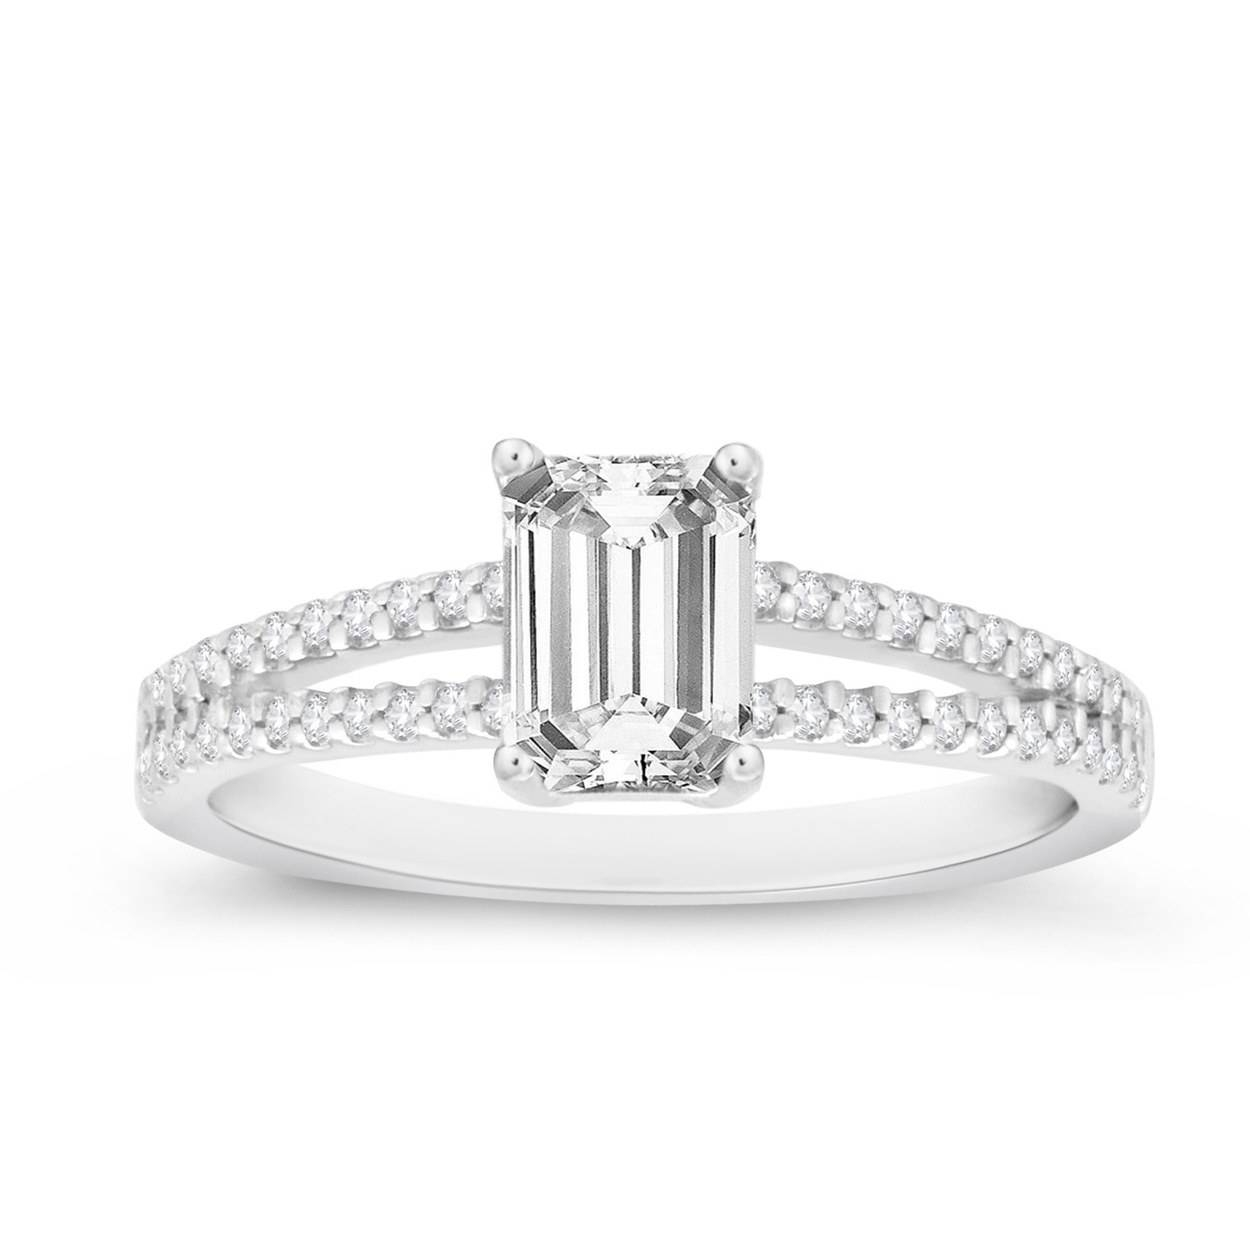 62 Diamond Engagement Rings Under $5,000 | Glamour Intended For White Emerald Engagement Rings (View 5 of 15)